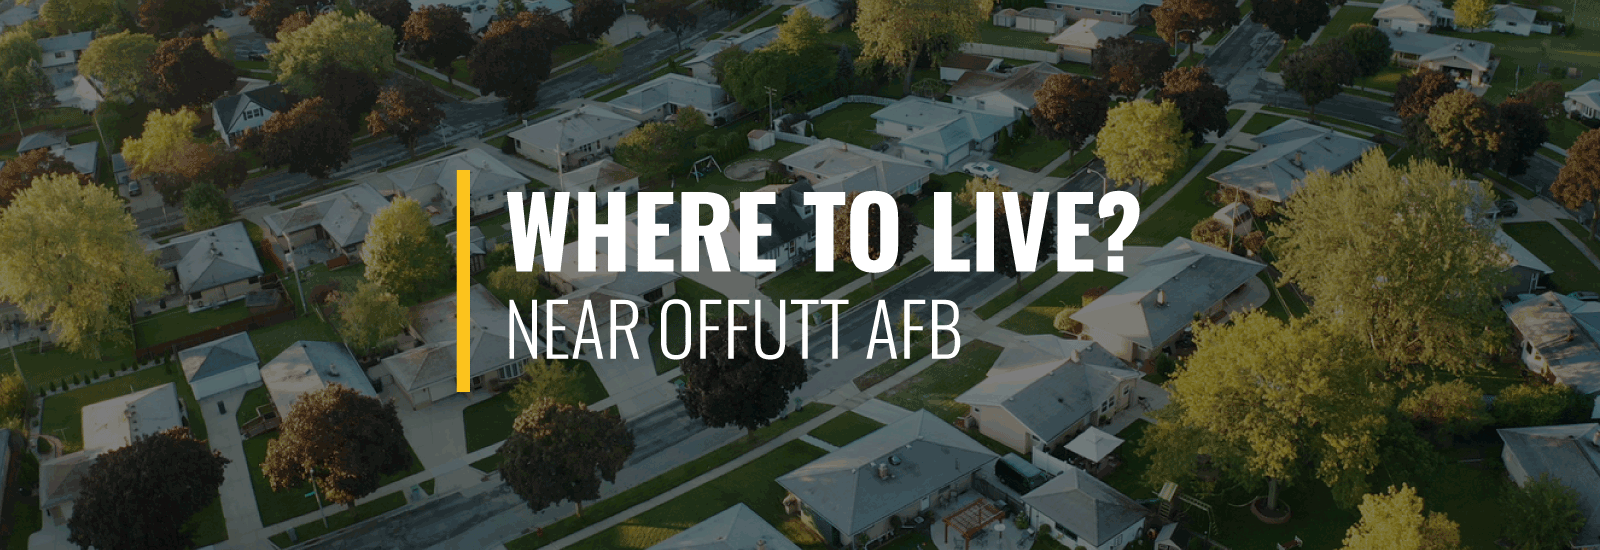 Where To Live Near Offutt Air Force Base?